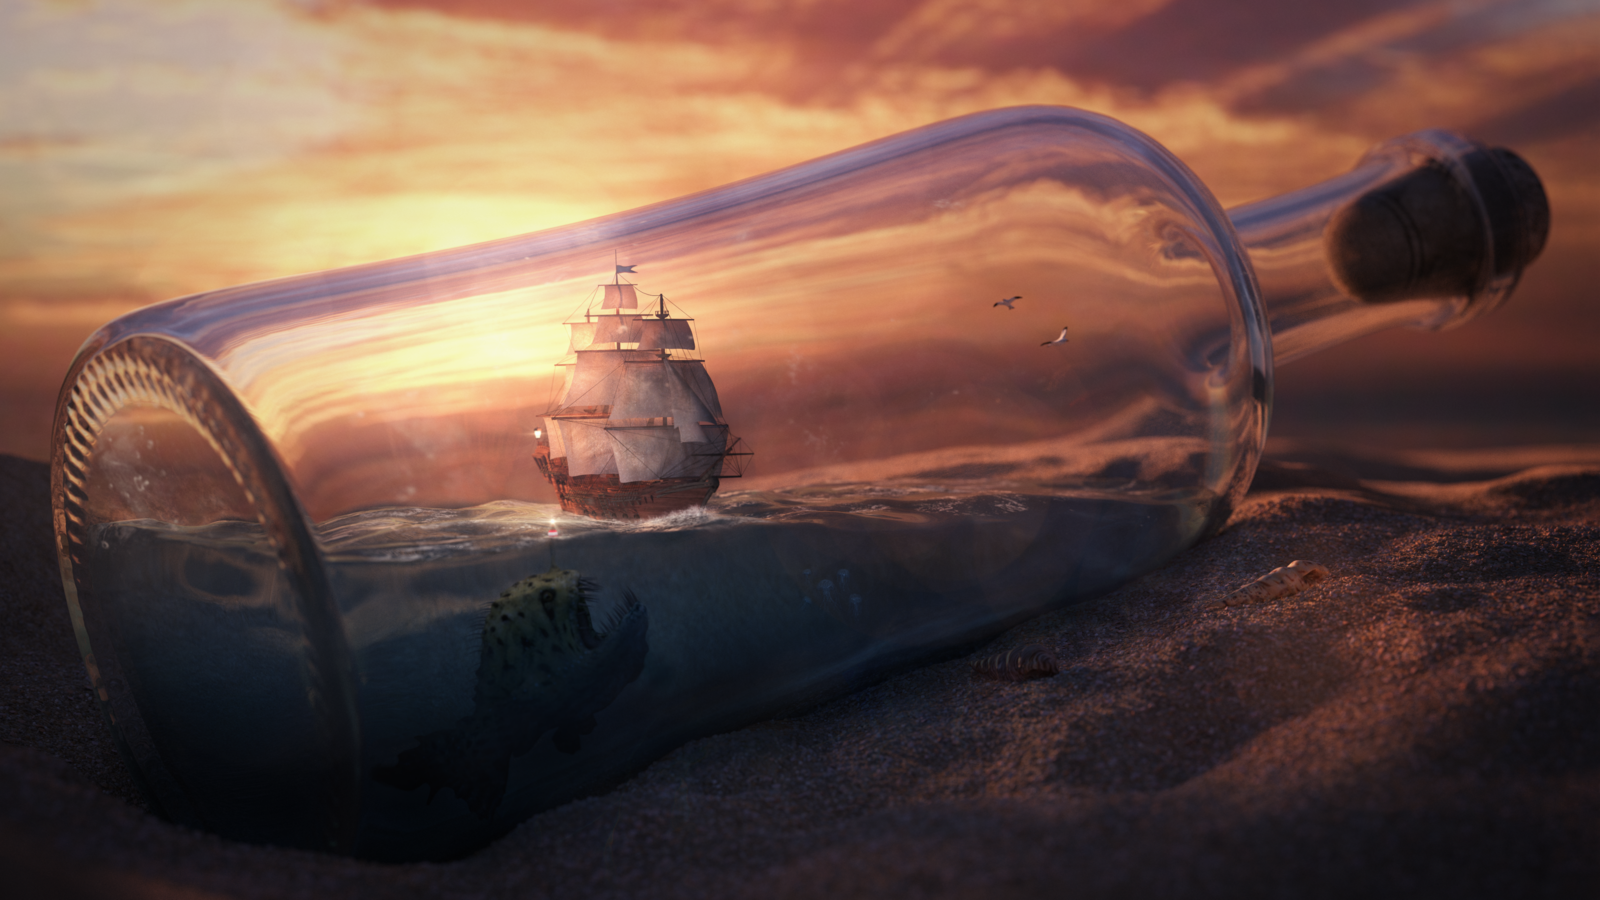 ship_in_a_bottle_by_frequenzlos-d8p26ht